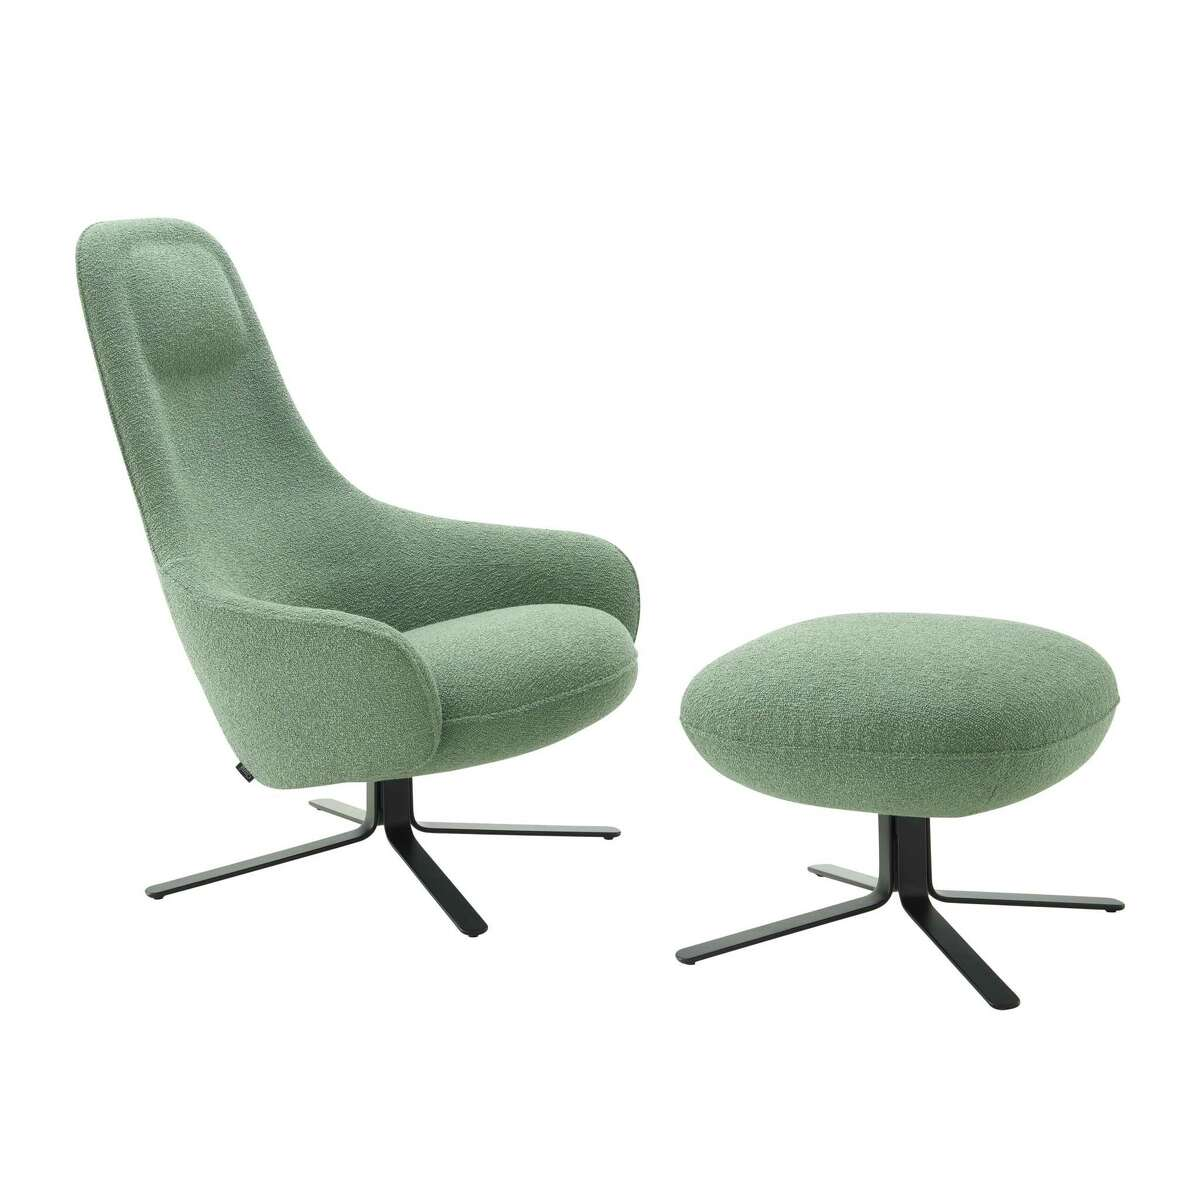 Keiji Takeuchi's Moa armchair, $3,600 and up, and ottoman, $1,380.